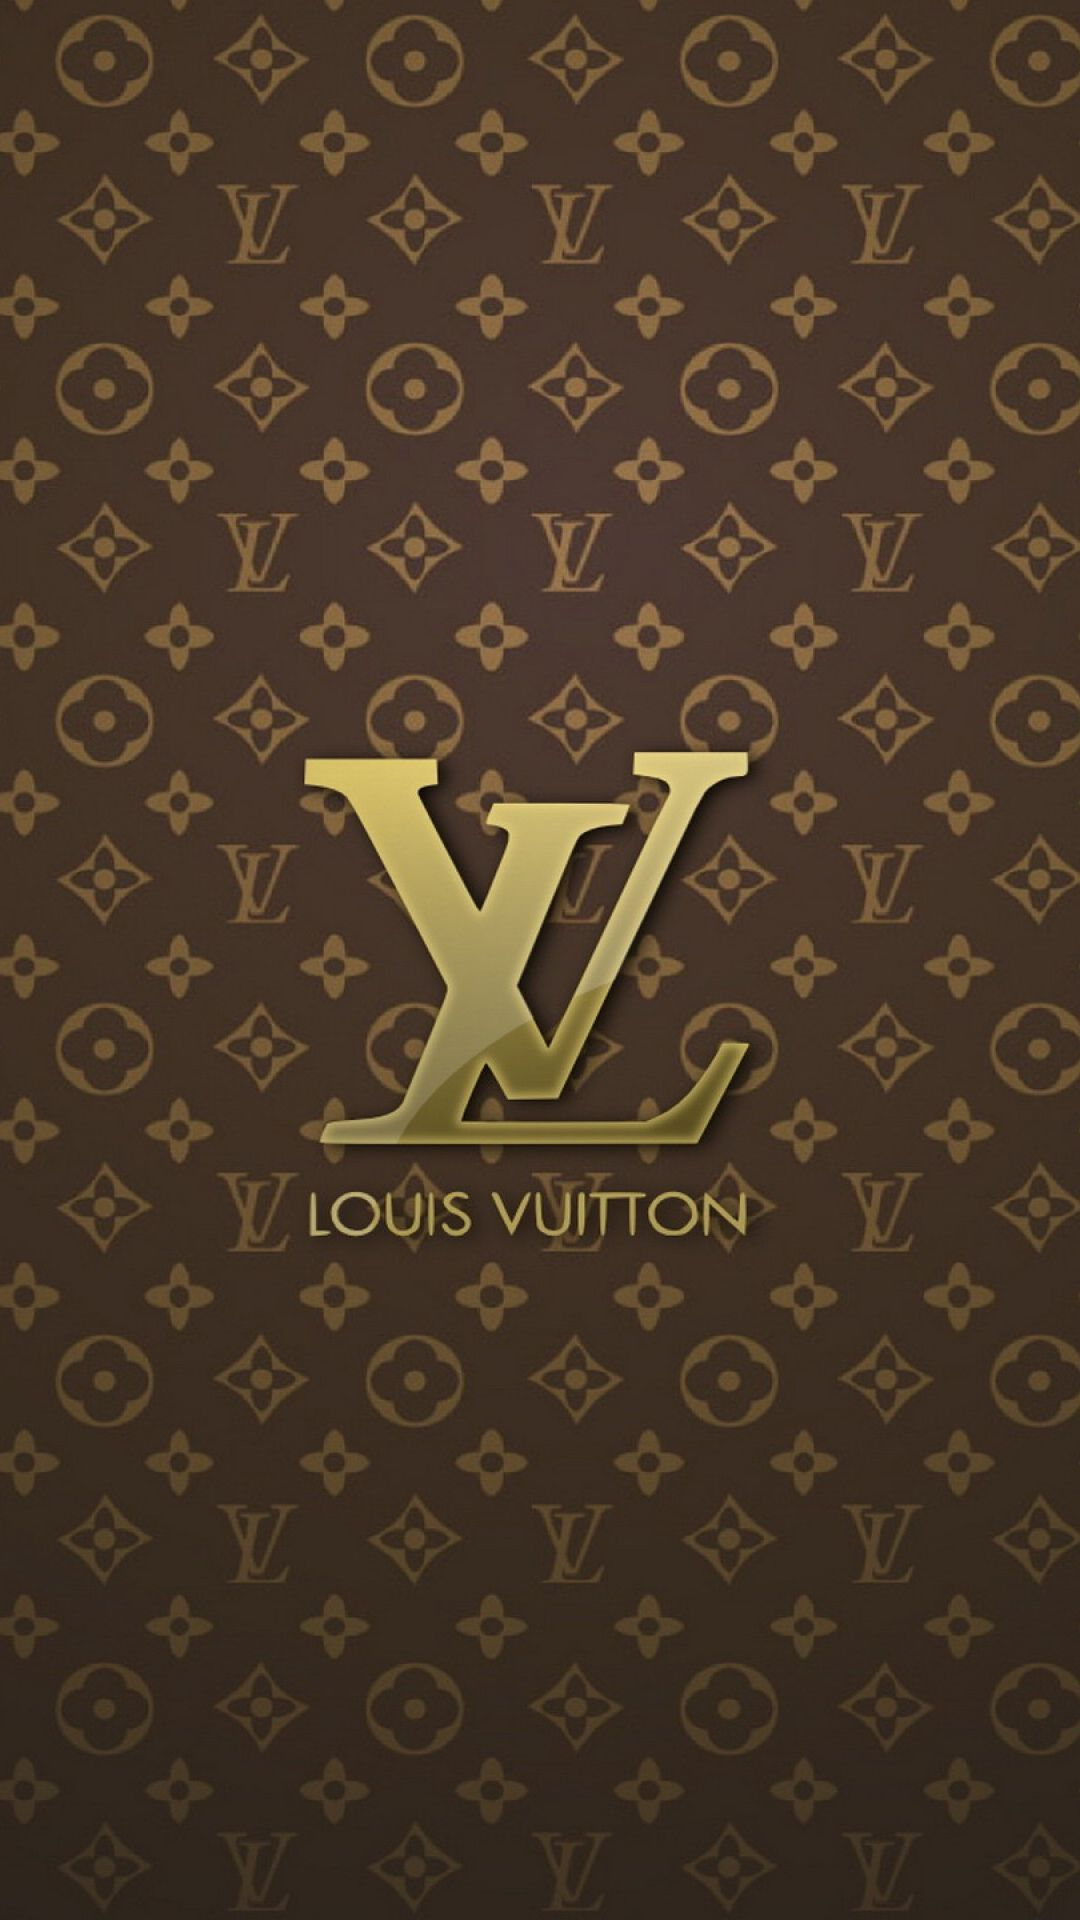 Louis Vuitton Iphone Wallpapers Top Free Louis Vuitton